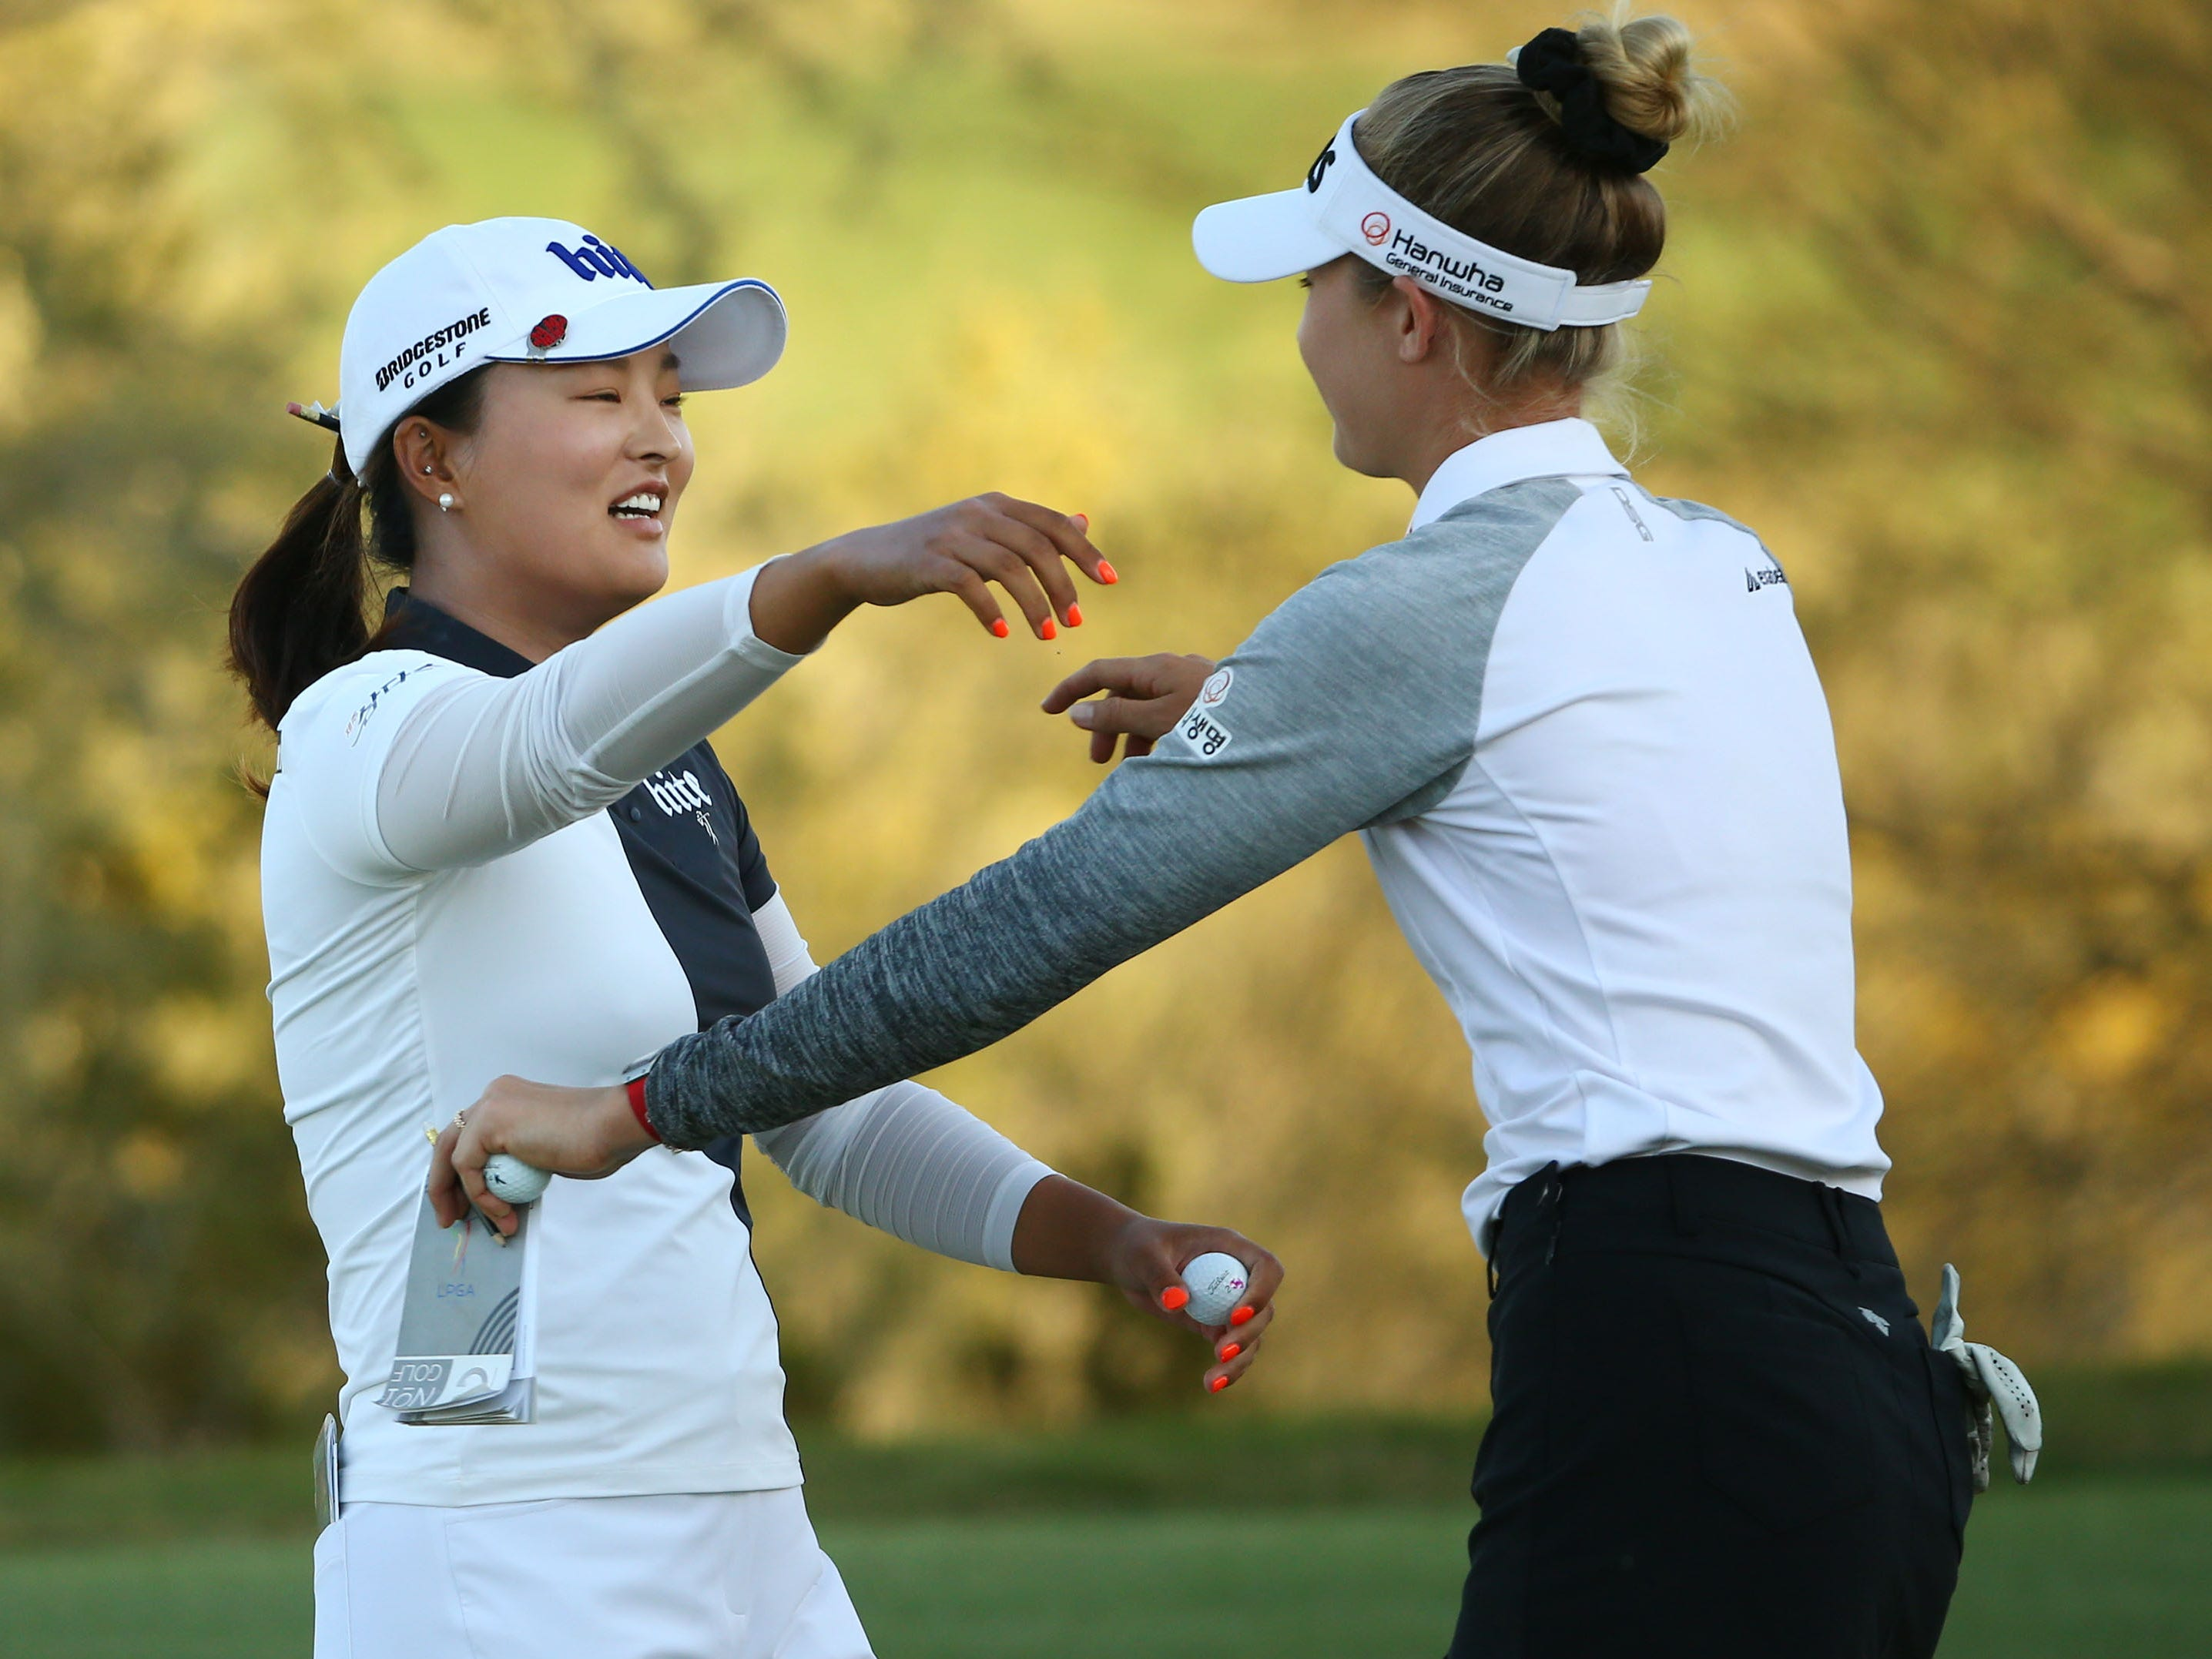 Jin Young Ko of South Korea hugs playing partner Nelly Korda (right) after finishing their final round at the Bank of Hope Founders Cup on Mar. 24, 2019 at Wildfire Golf Club at JW Marriott in Phoenix, Ariz.